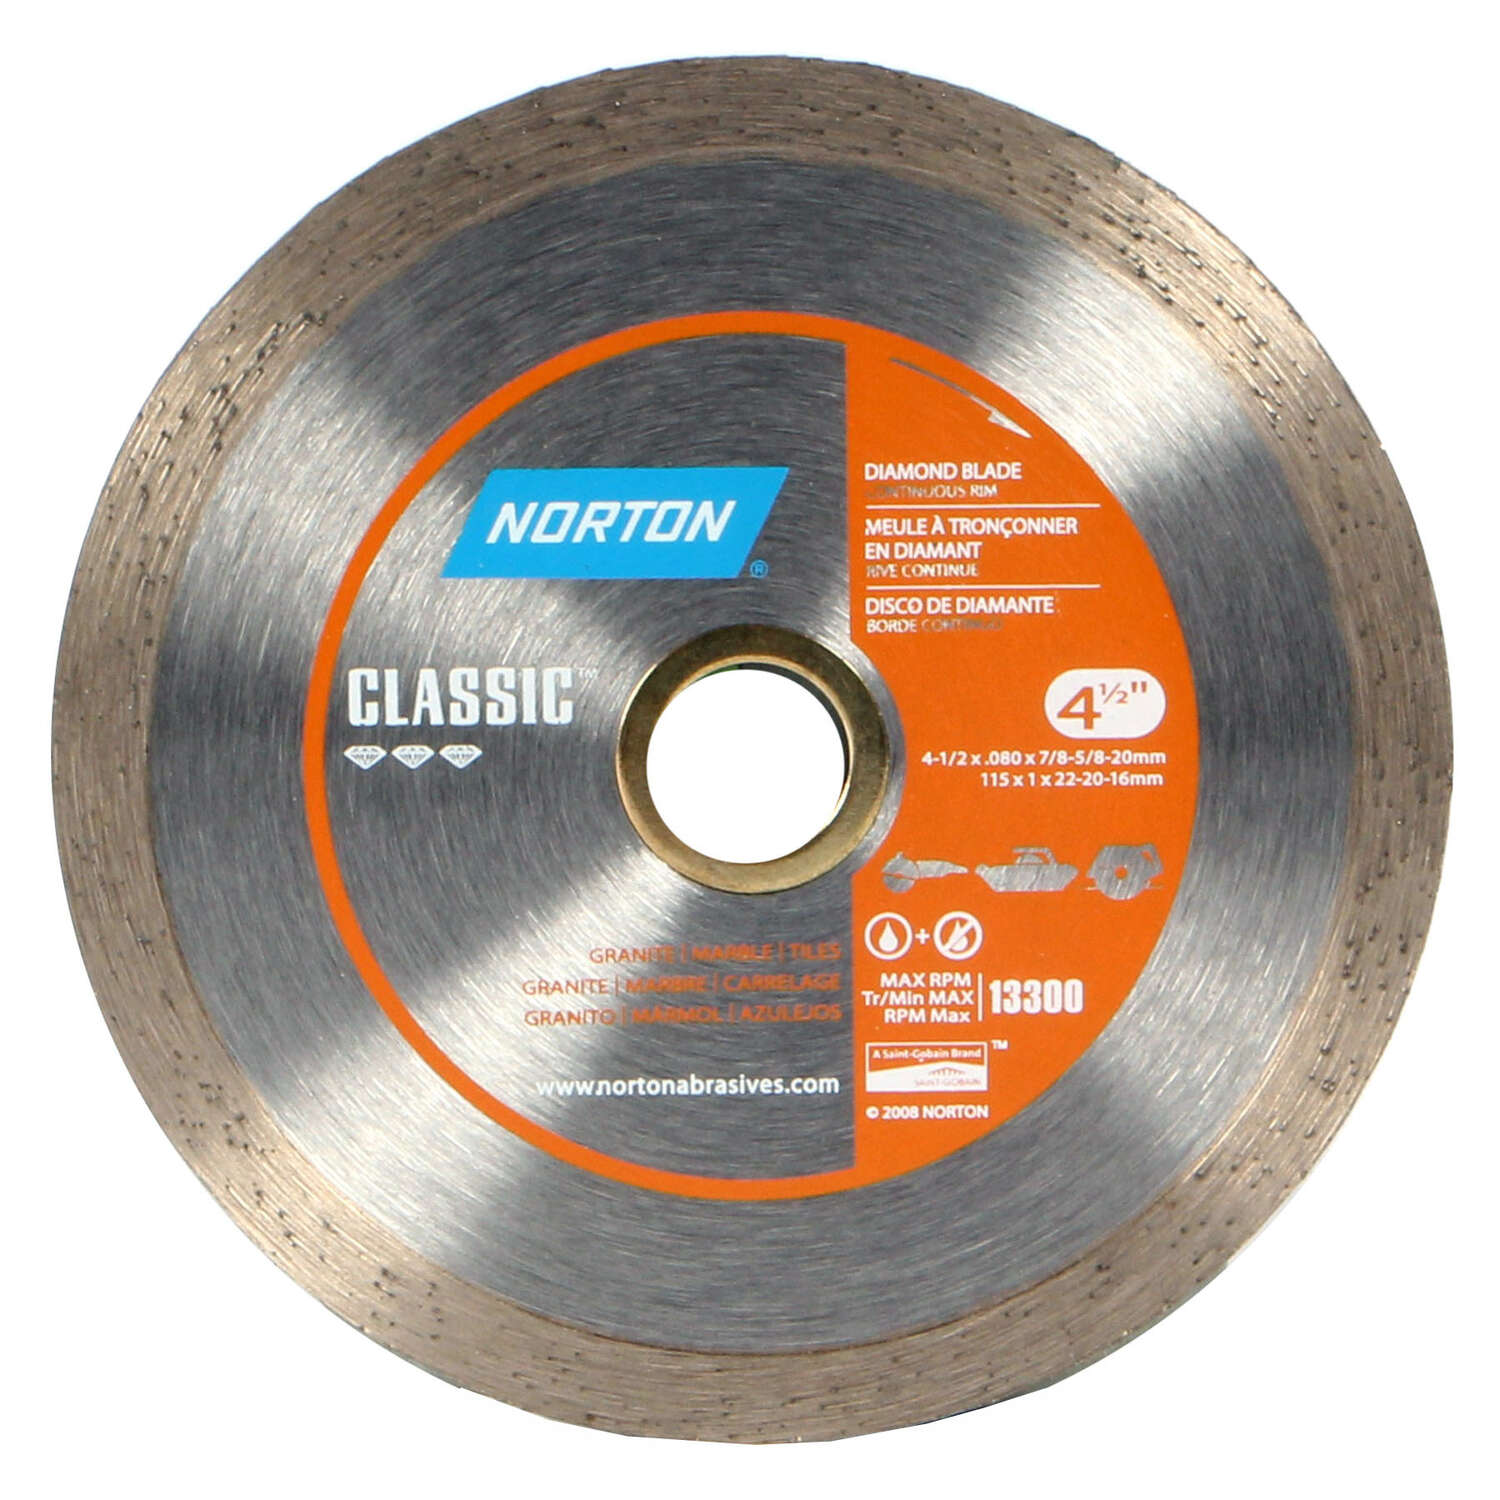 Norton  4-1/2  Diamond  0.08 in.  5/8 and 7/8  Classic  Continuous Rim Diamond Saw Blade  1 pc.